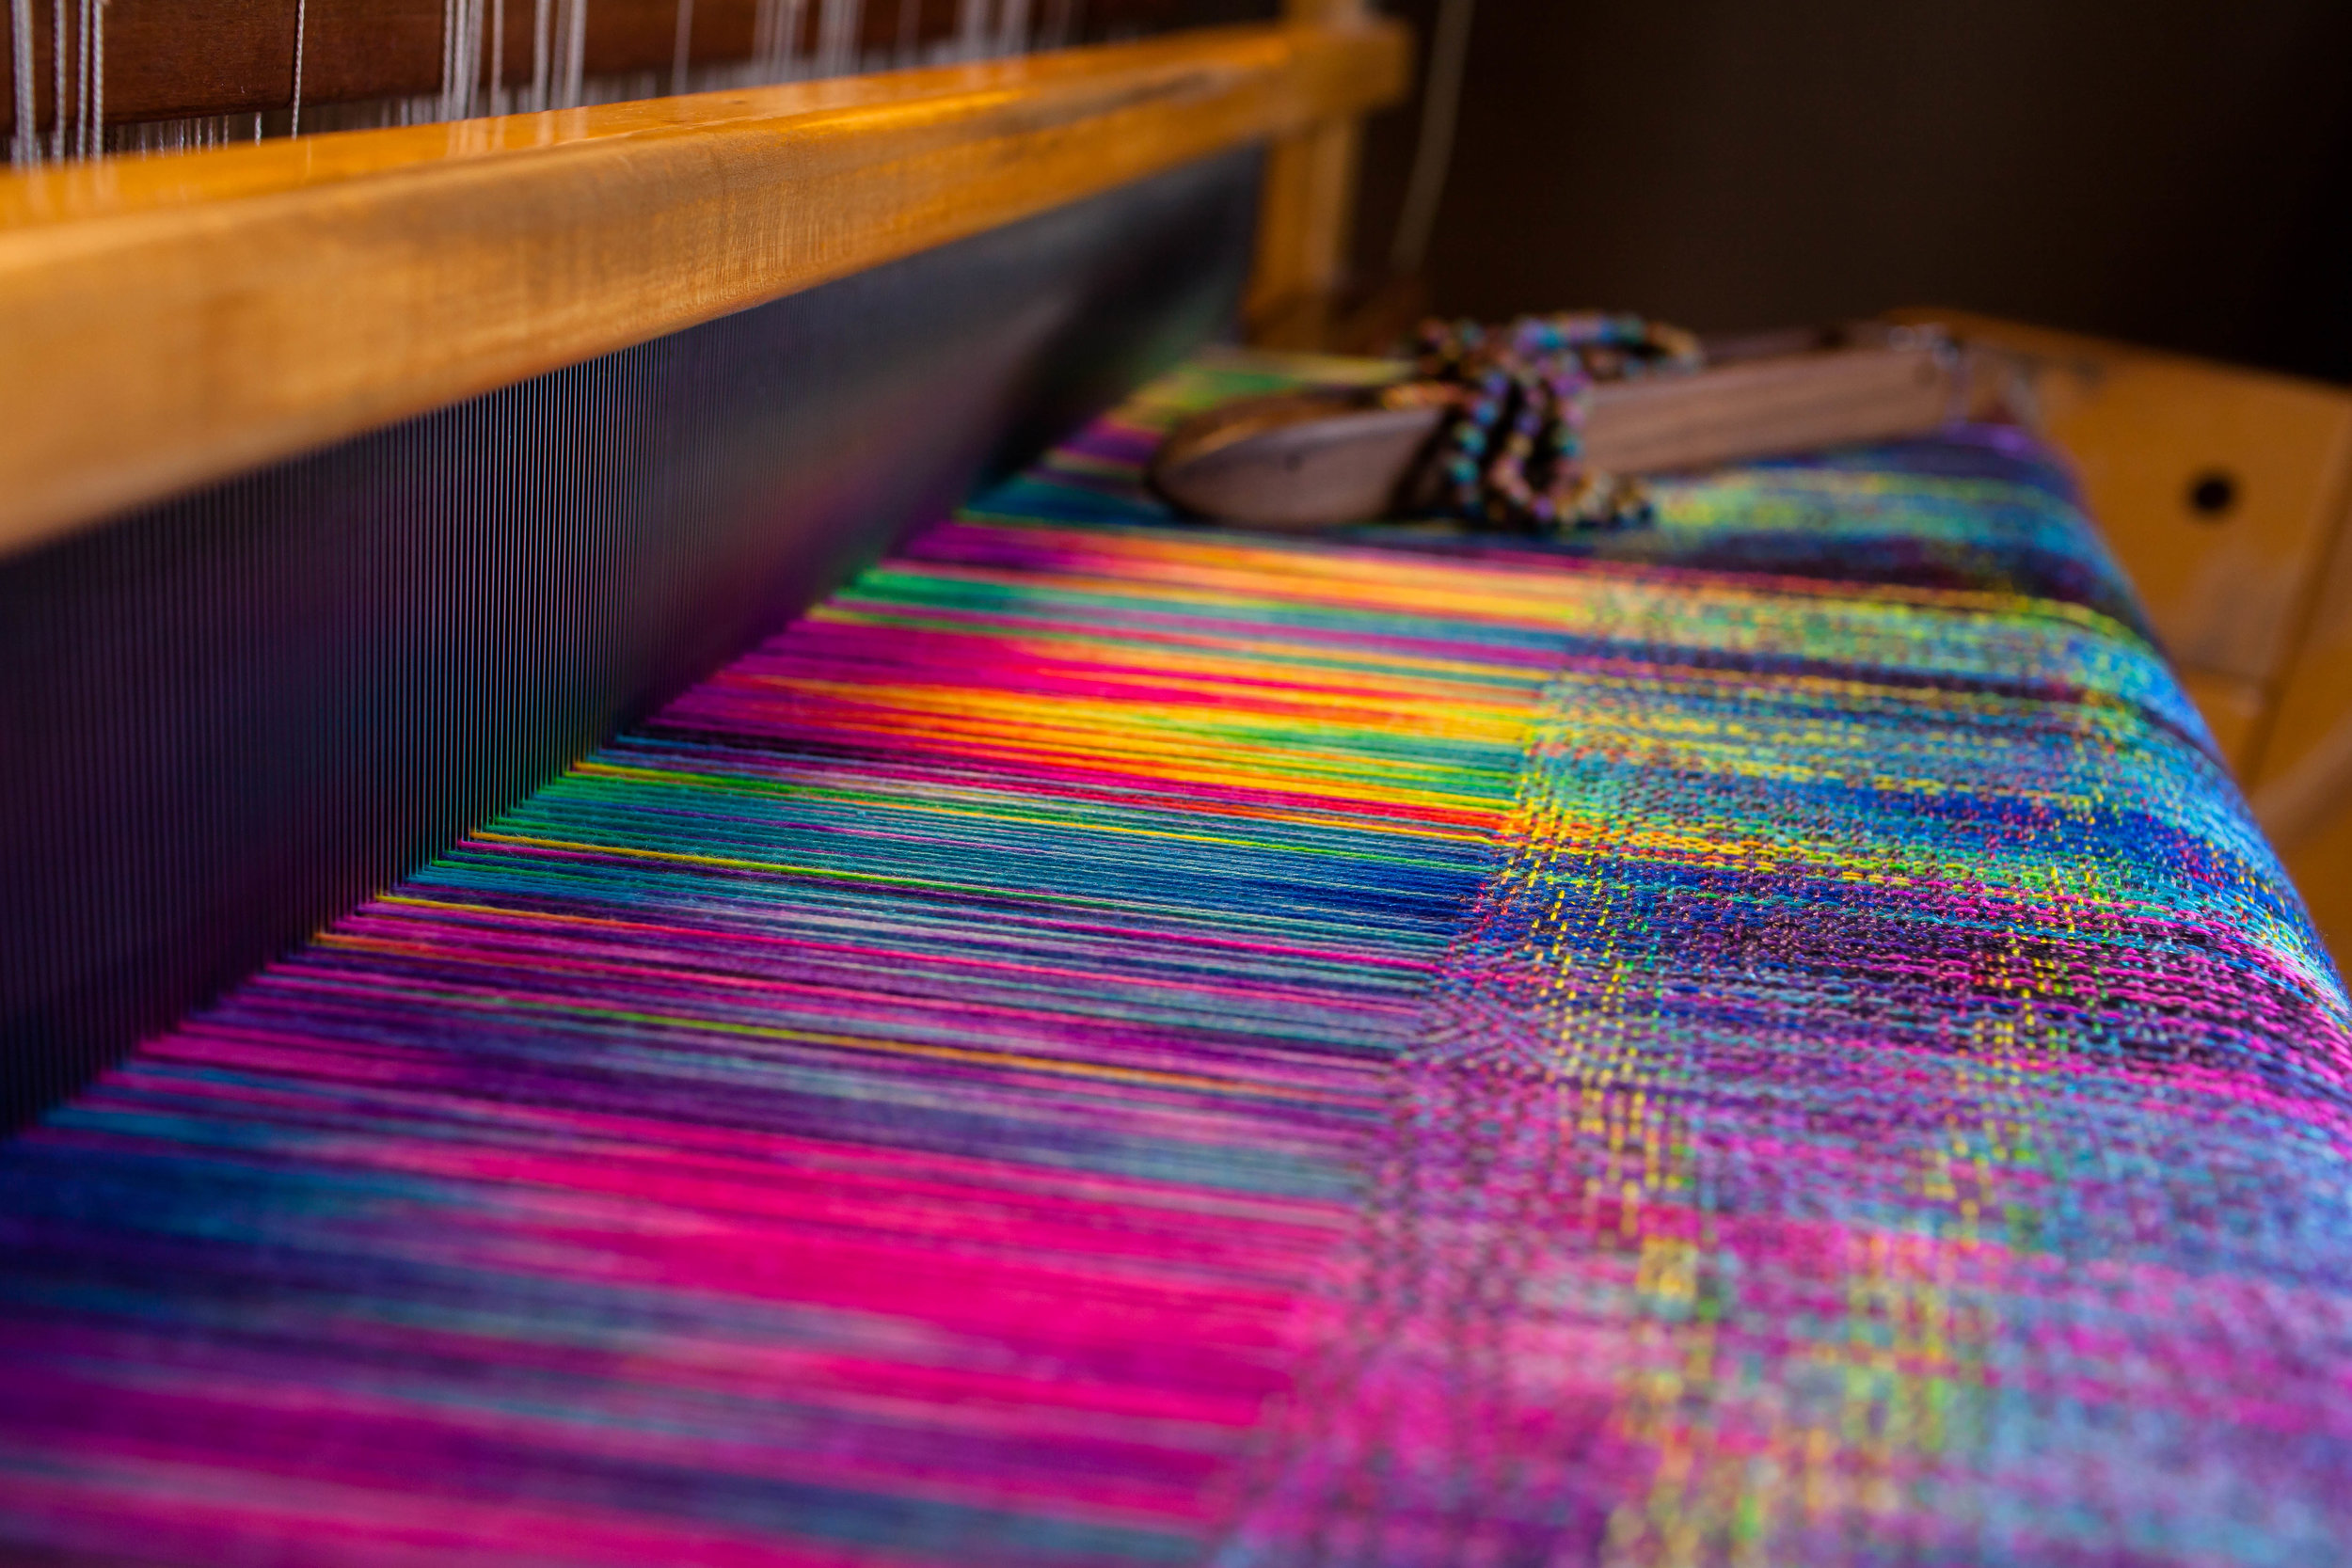 VALHALLA  Photo ID: photo shows a rainbow fabric though the loom reed, a shuttle is placed in the background decorated with beads